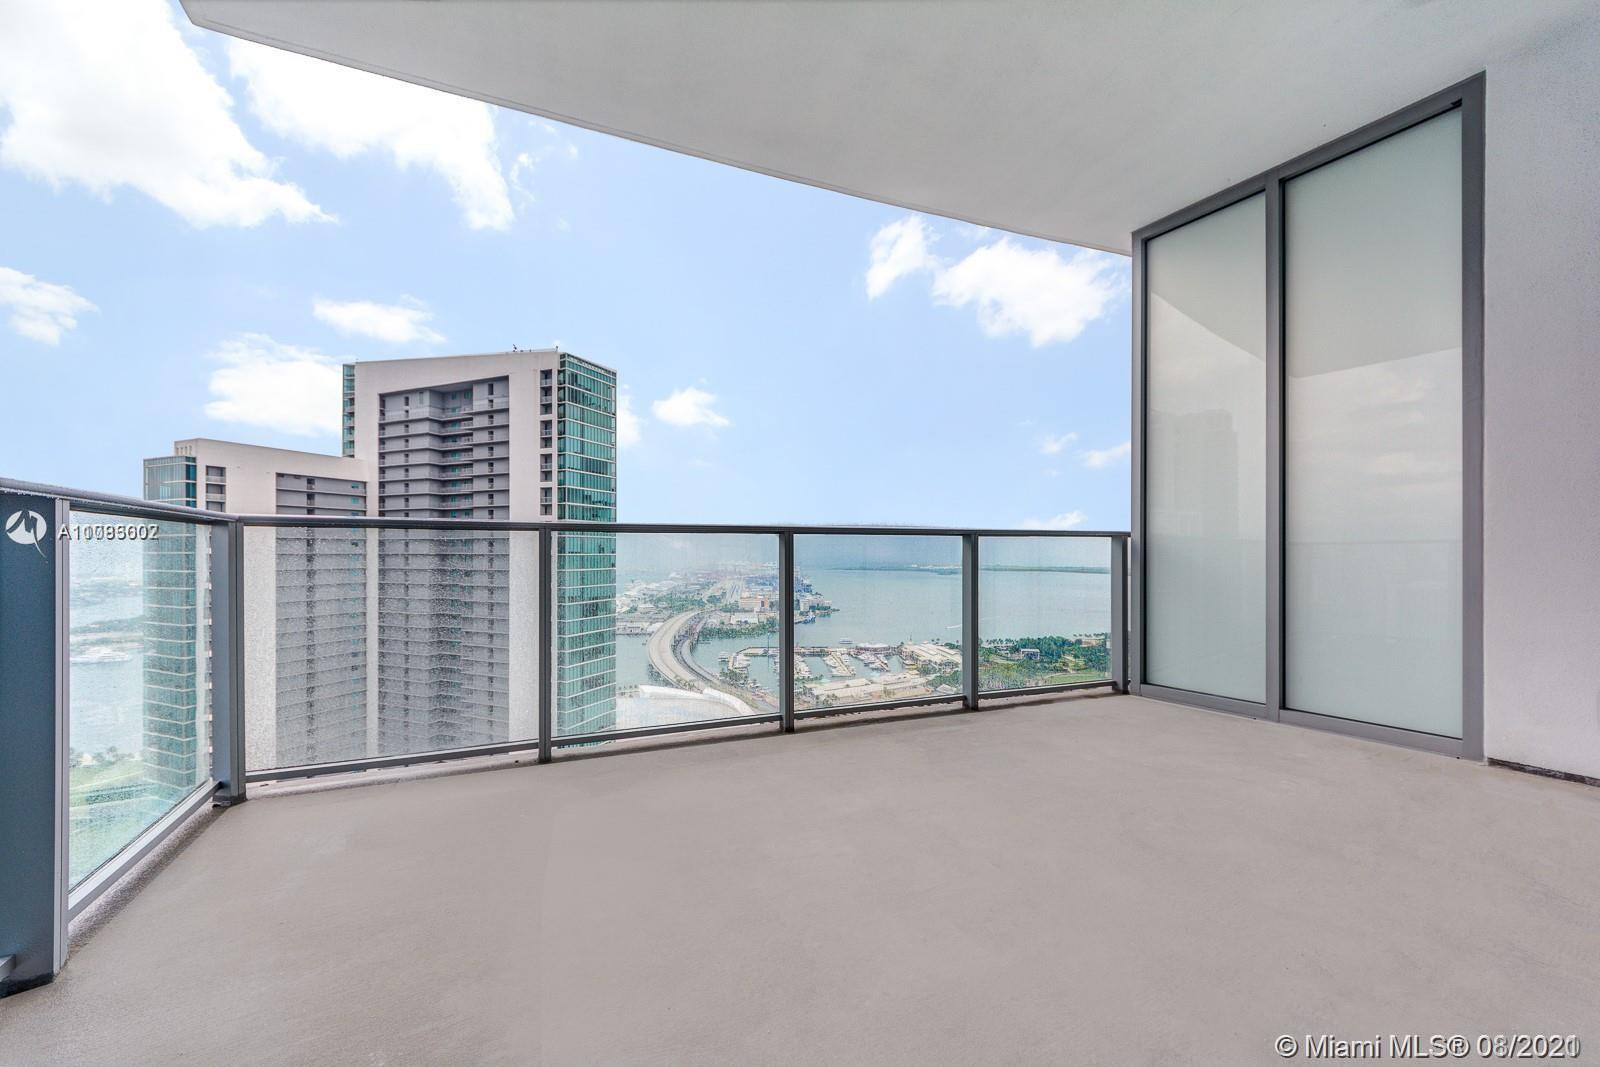 Luxury residence 2 beds +den/3 baths at Paramount Miami Worldcenter offering the Most amenities in t